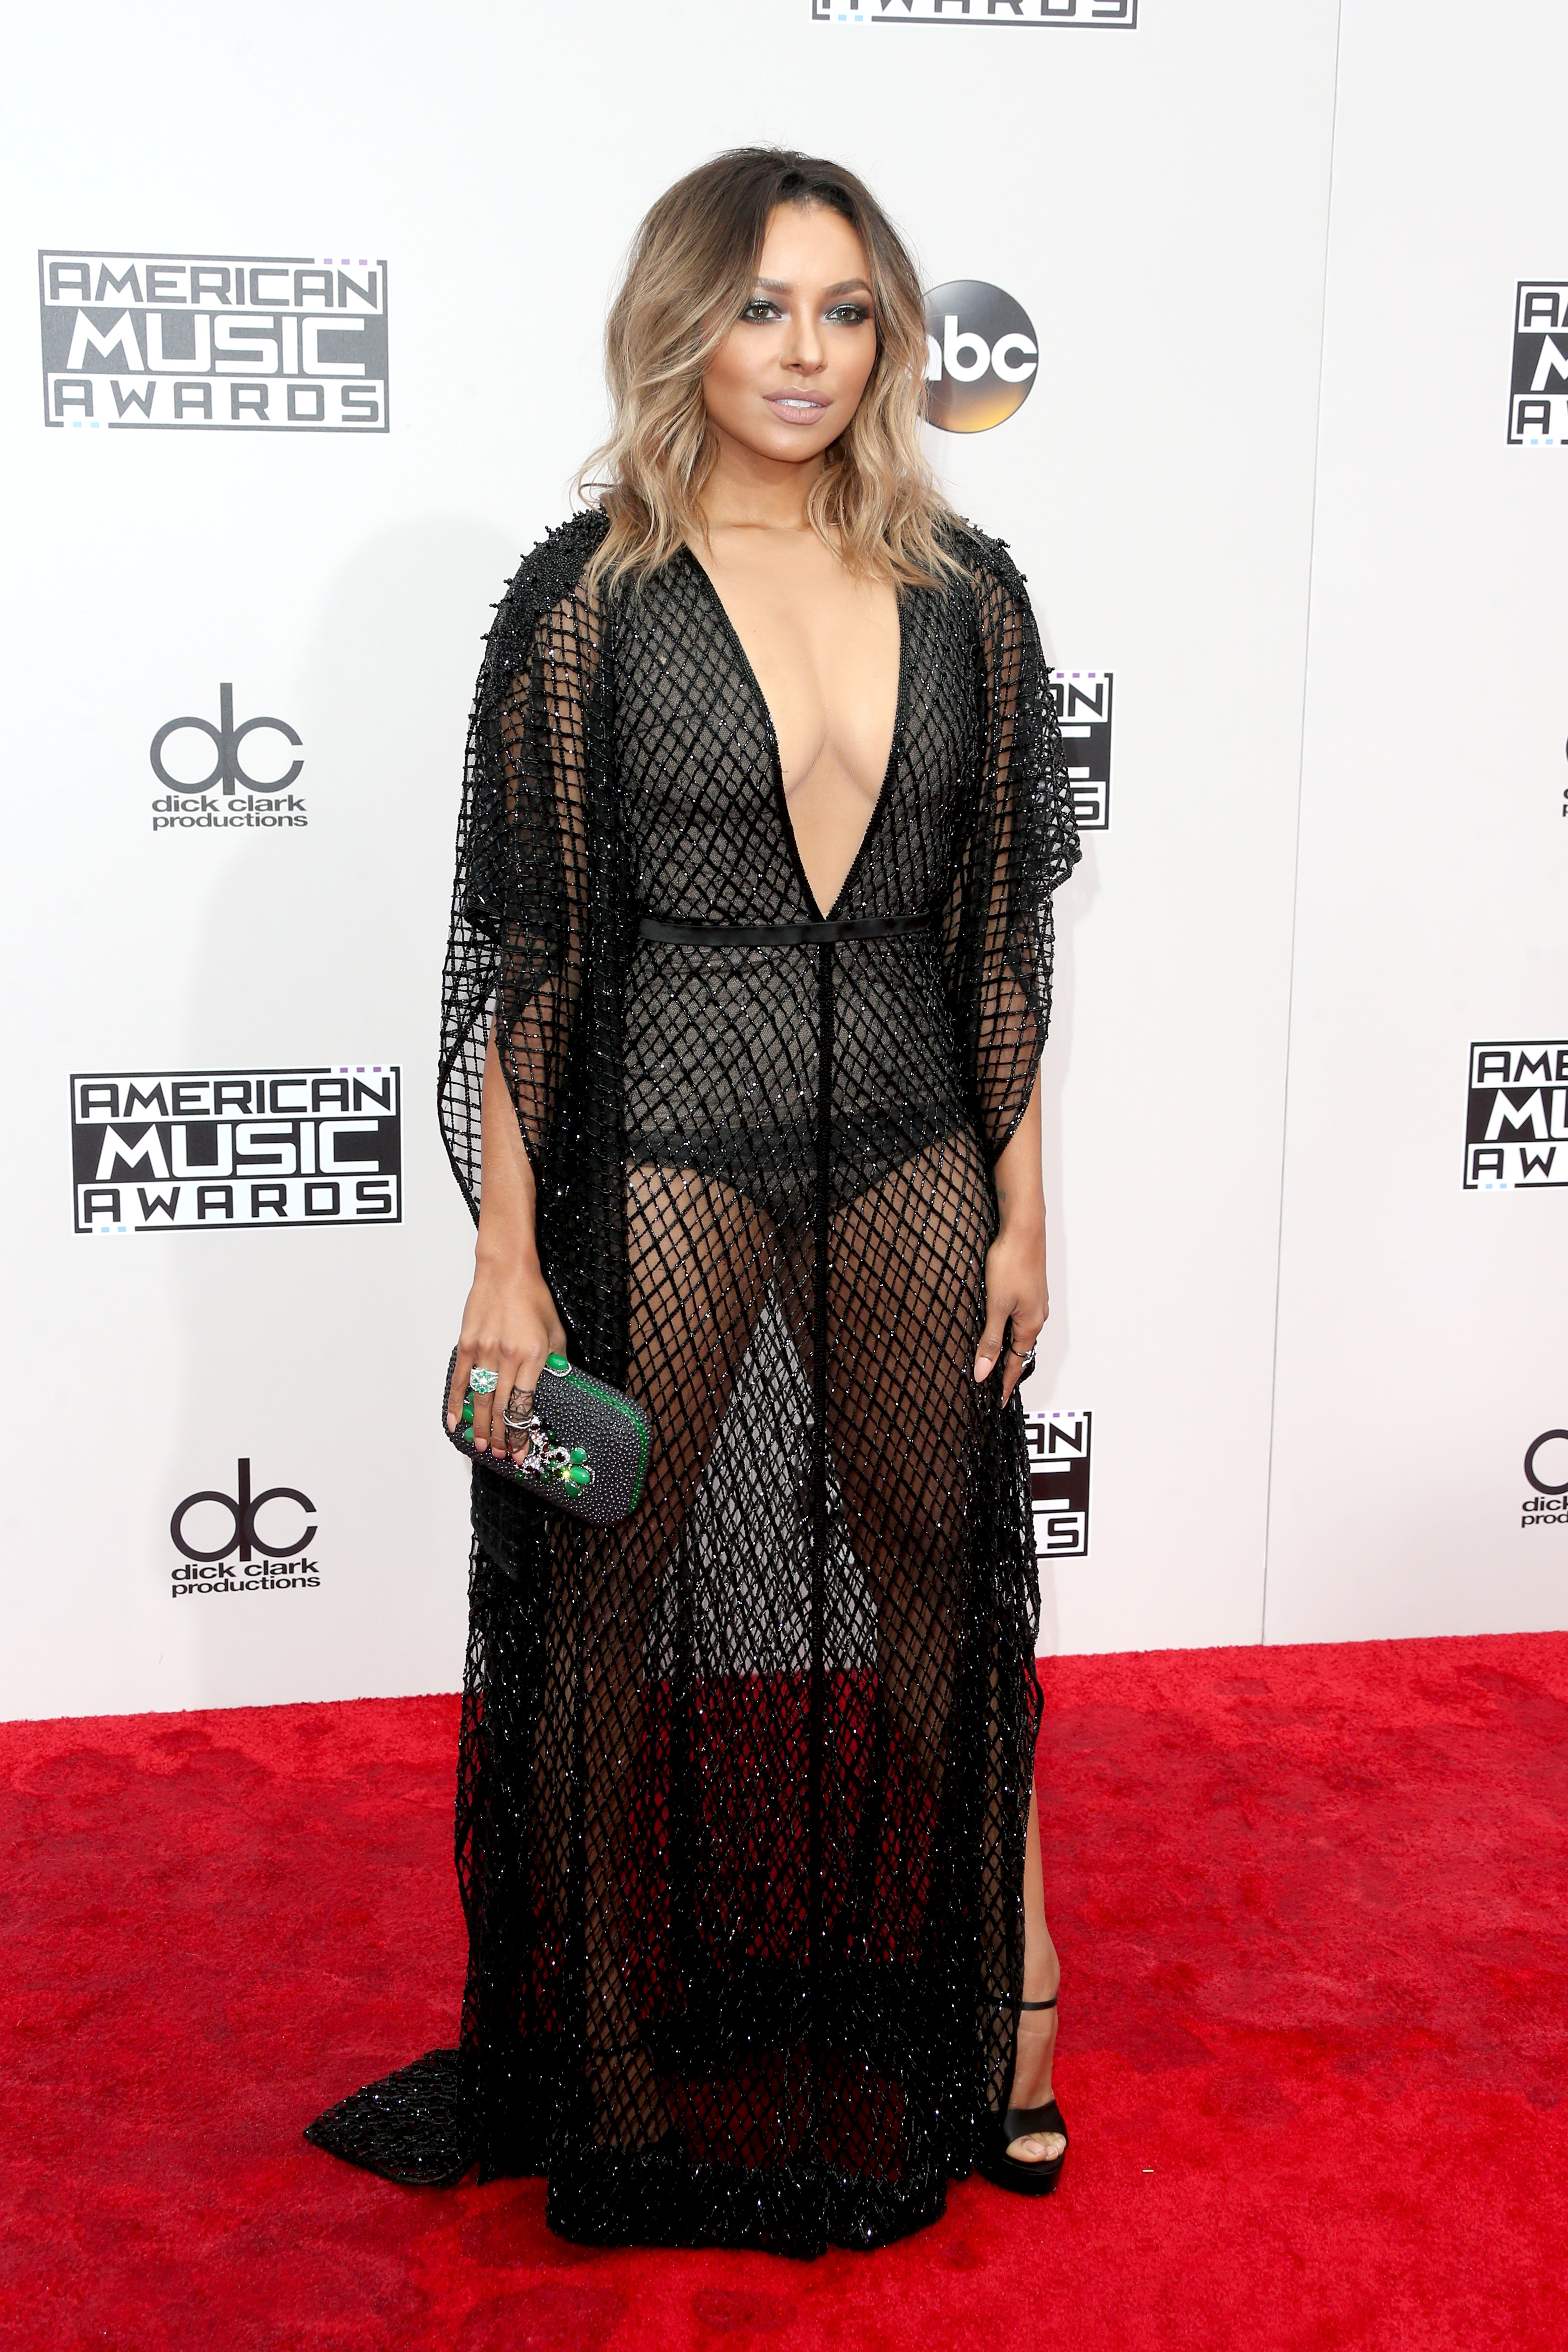 LOS ANGELES, CA - NOVEMBER 20: Actress Kat Graham attends the 2016 American Music Awards at Microsoft Theater on November 20, 2016 in Los Angeles, California. (Photo by Frederick M. Brown/Getty Images)